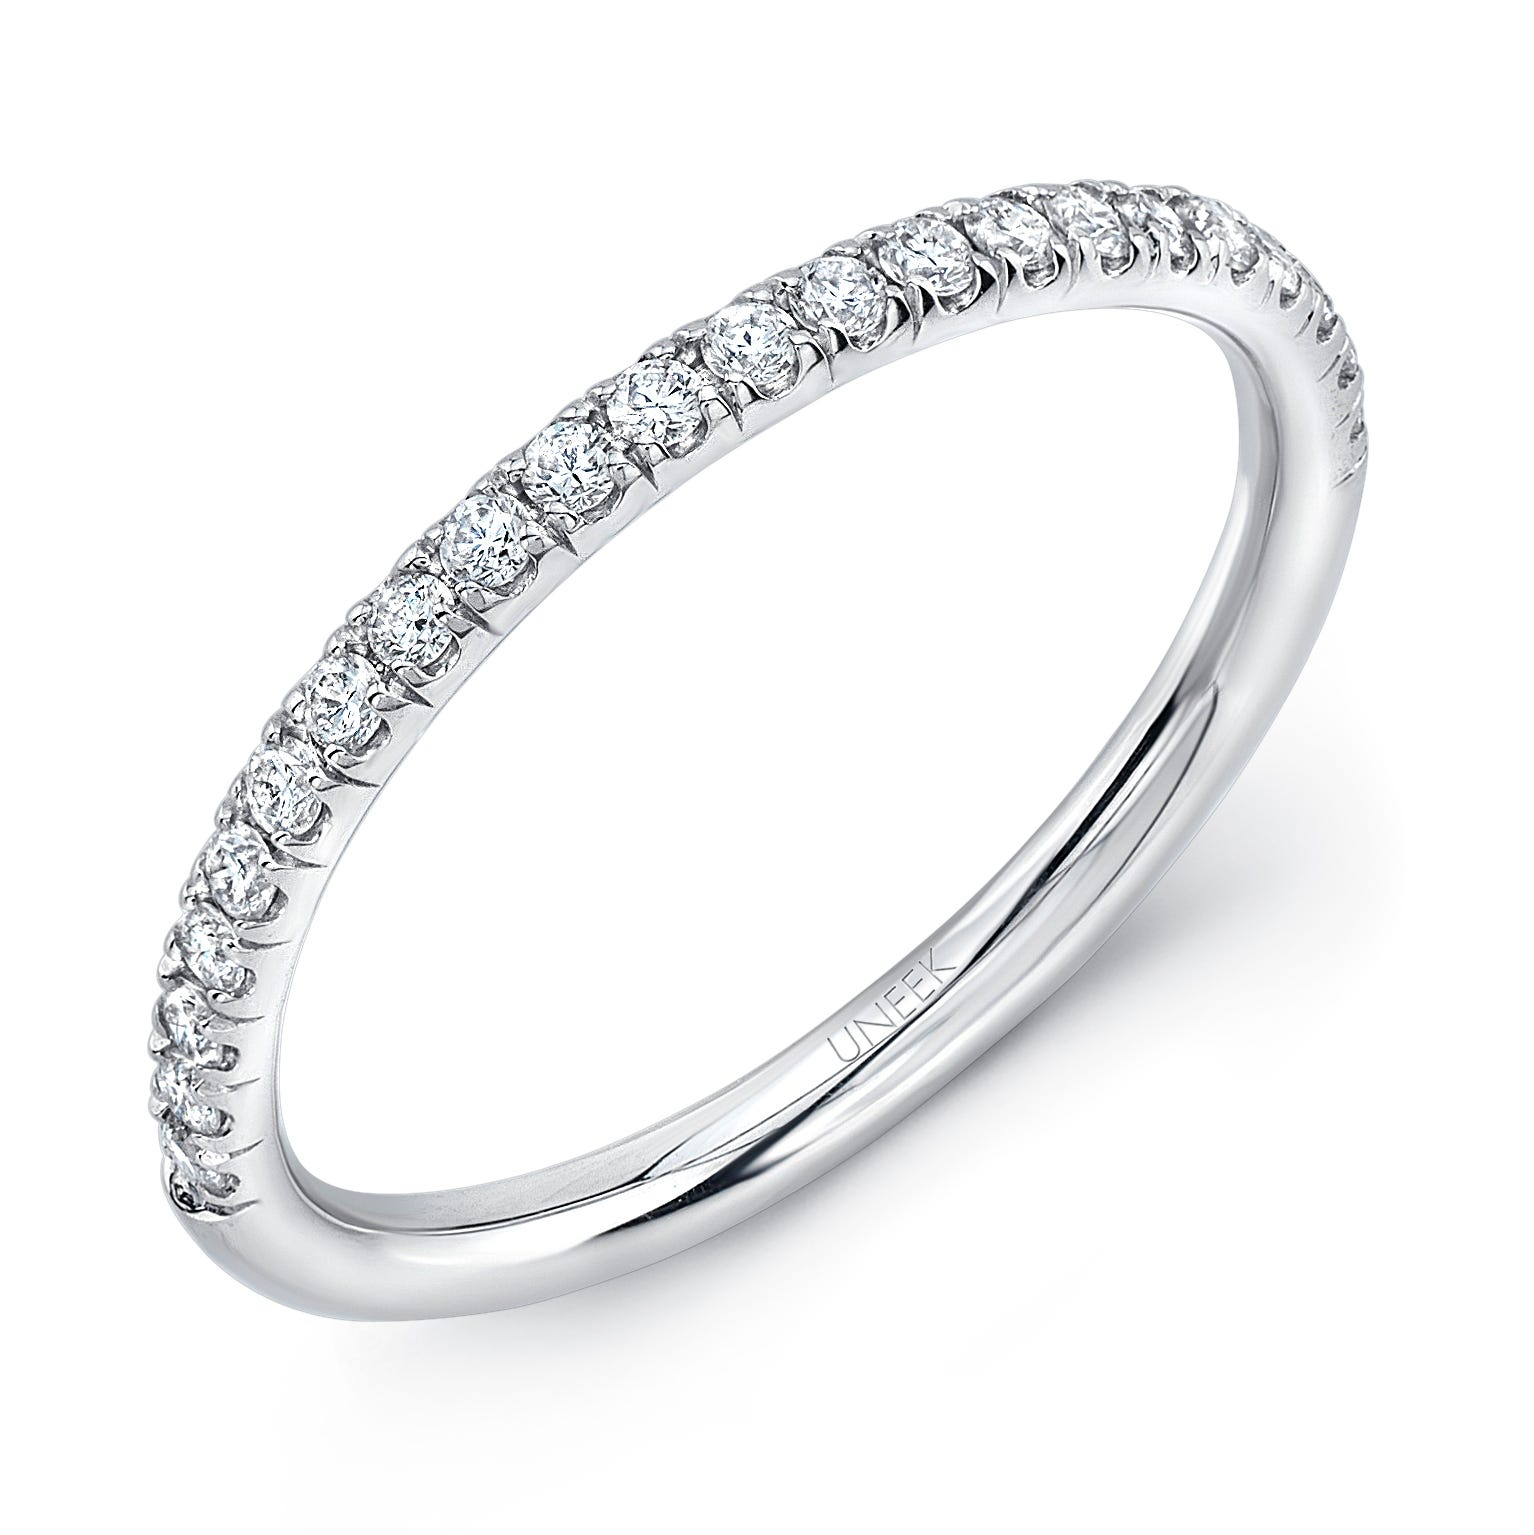 Uneek Silhouette Pave Diamond Wedding Band in 14K White Gold